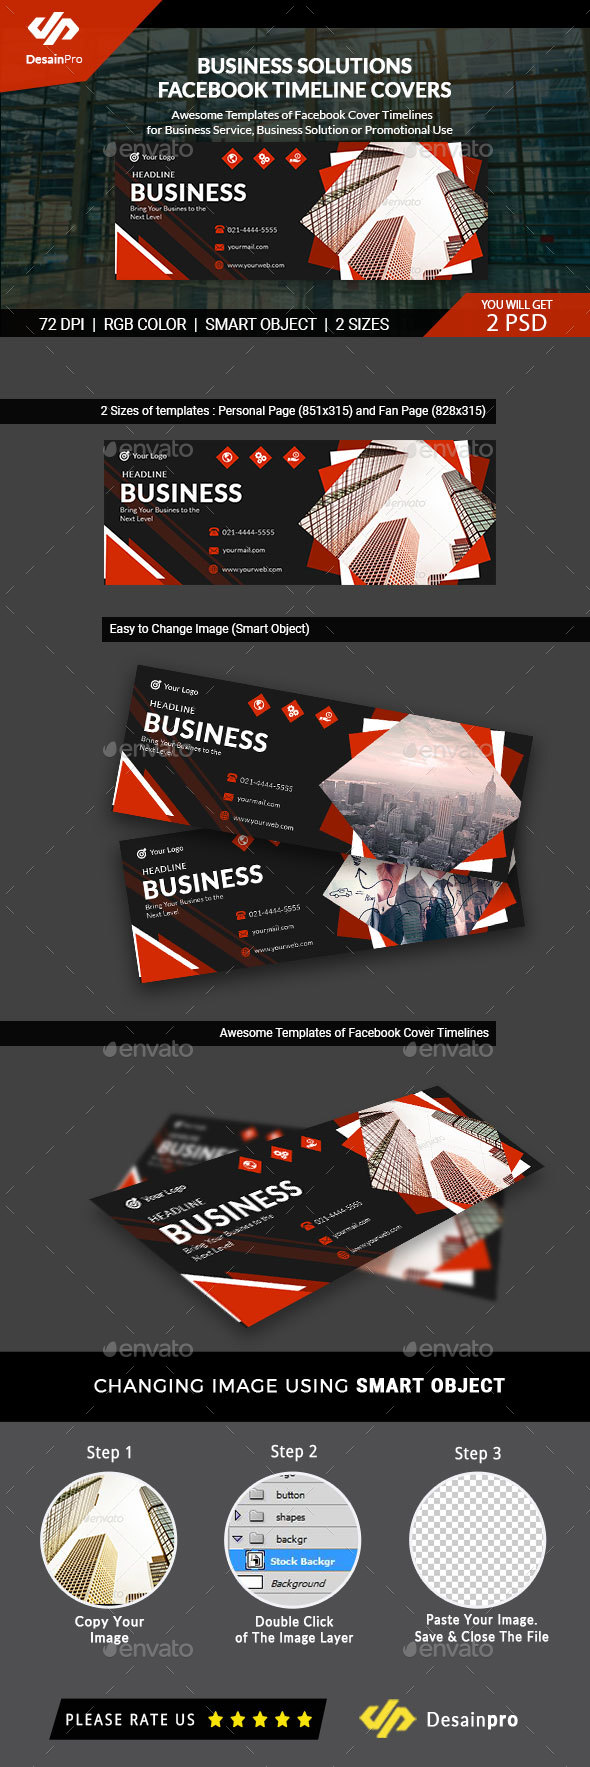 GraphicRiver Business Solutions FB Cover Timeline AR 21147395